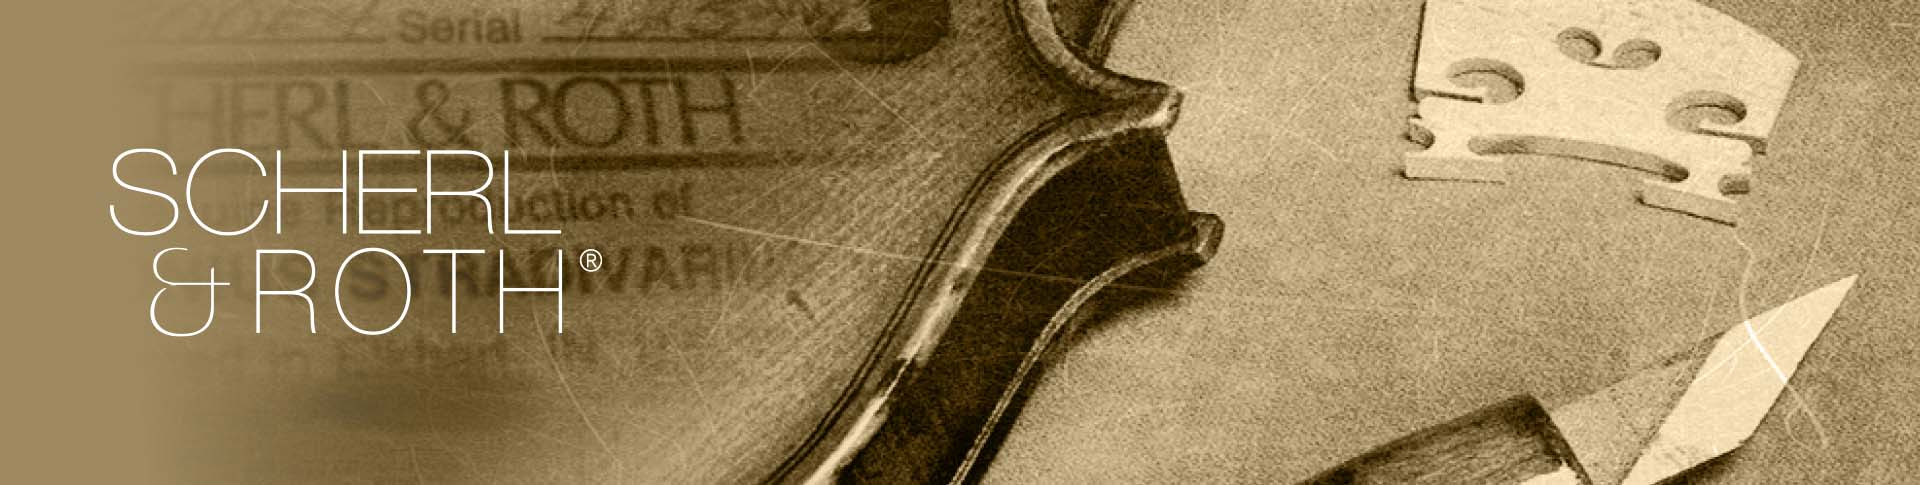 Scherl and Roth logo on top of violin pieces